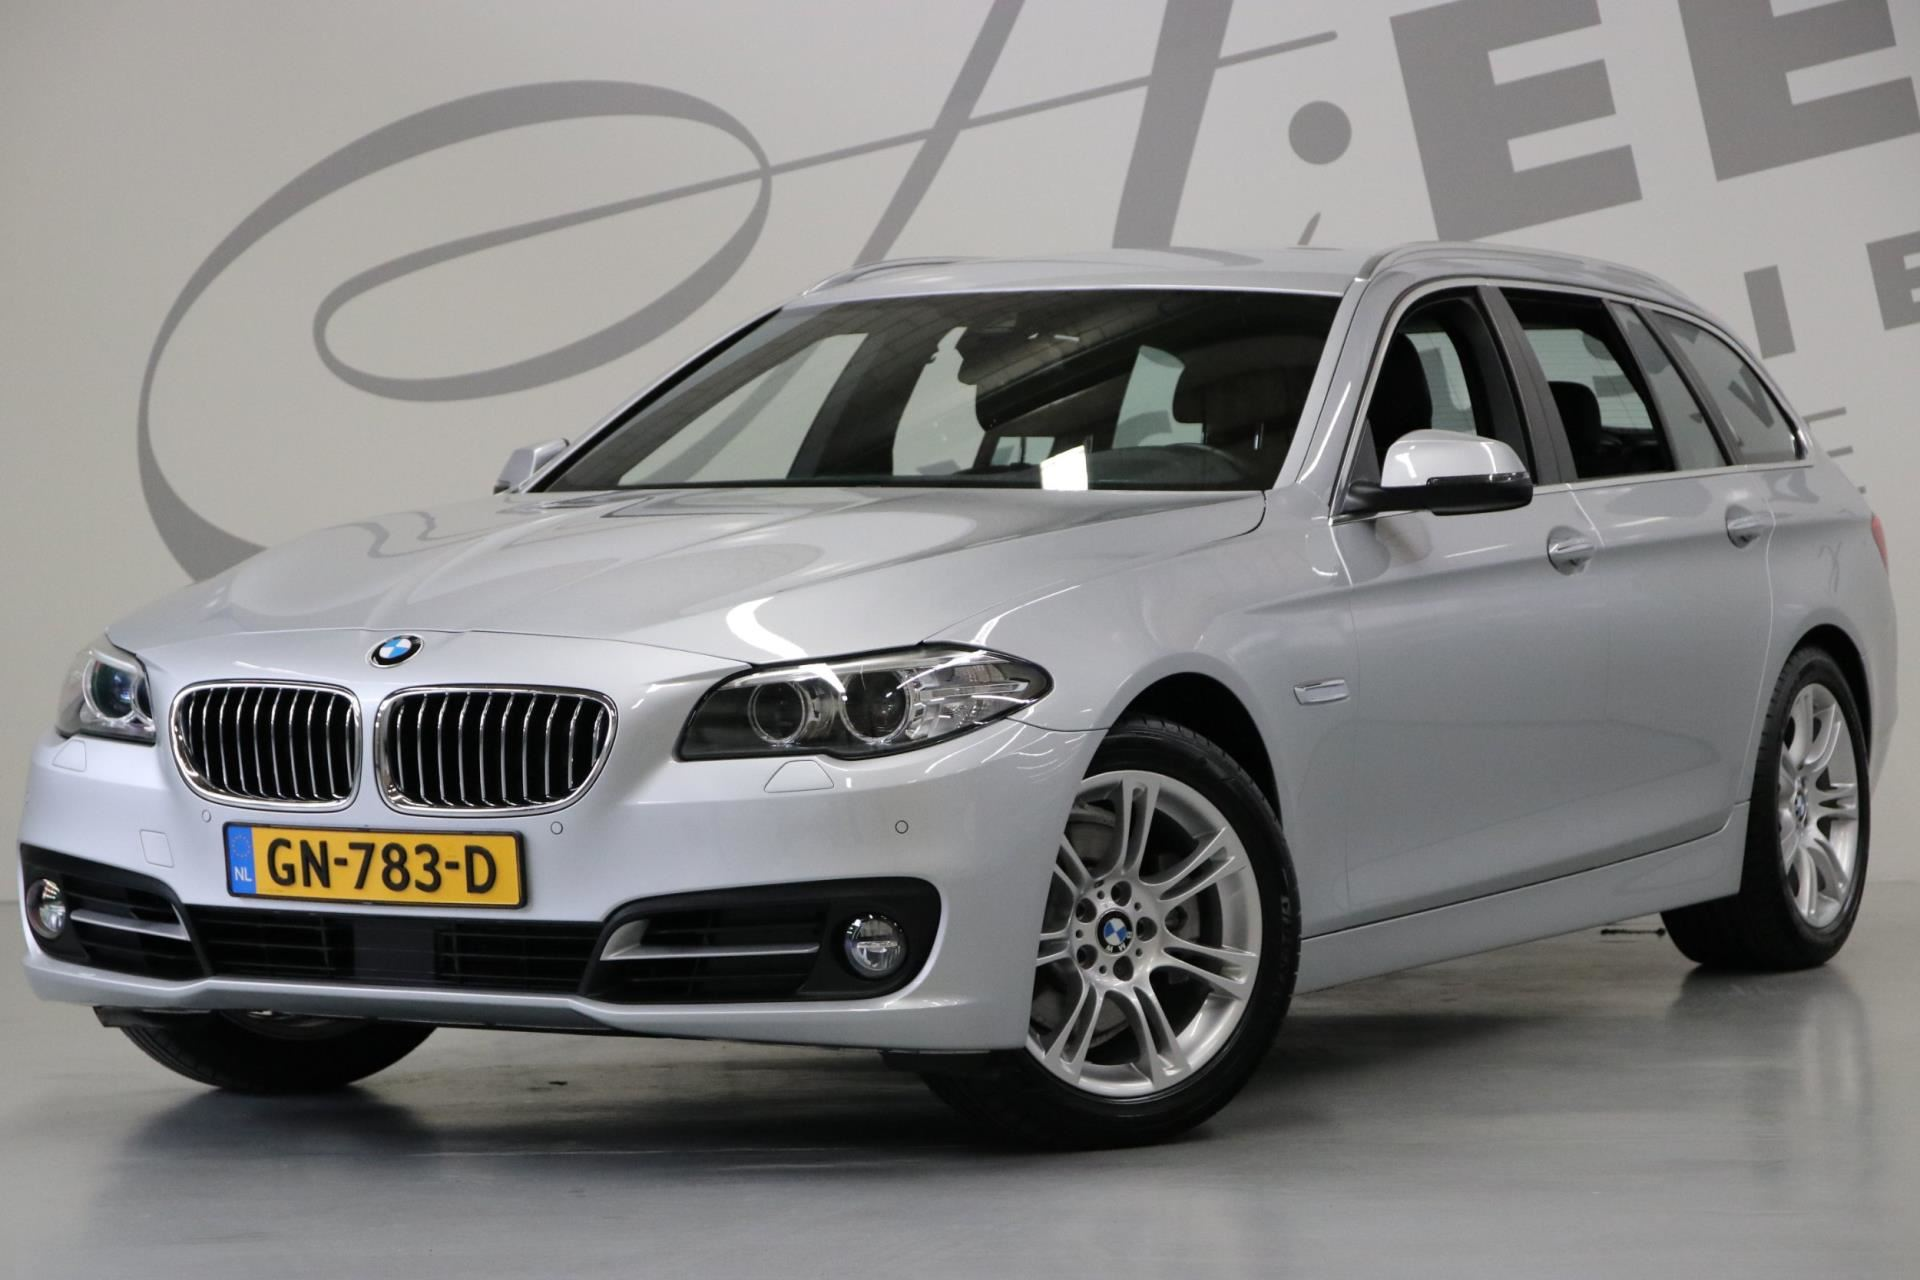 BMW 5-serie Touring occasion - Aeen Exclusieve Automobielen